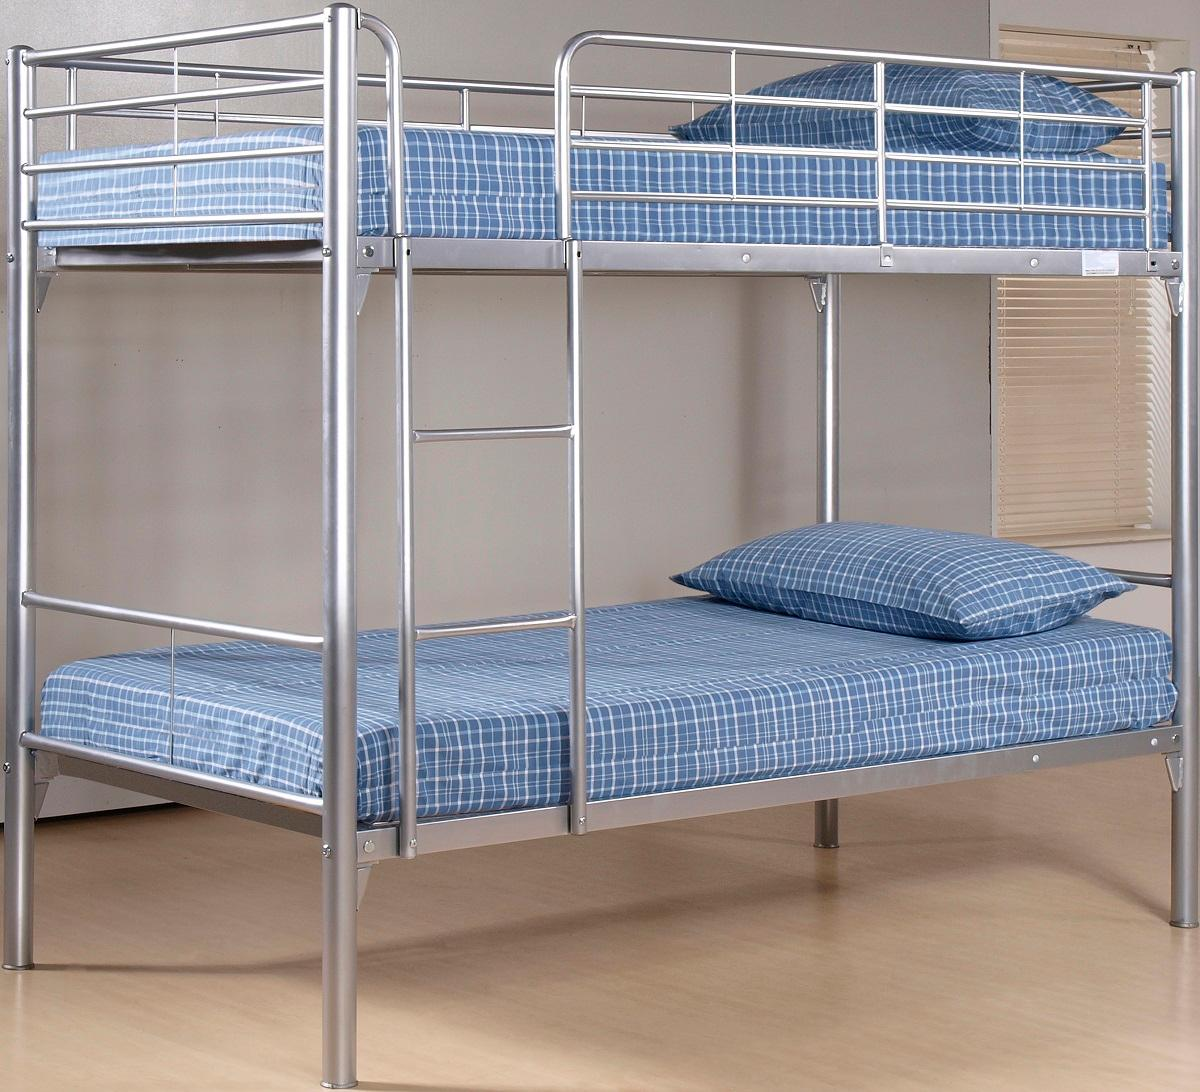 Sleepmaker backpacker steel bunk bed